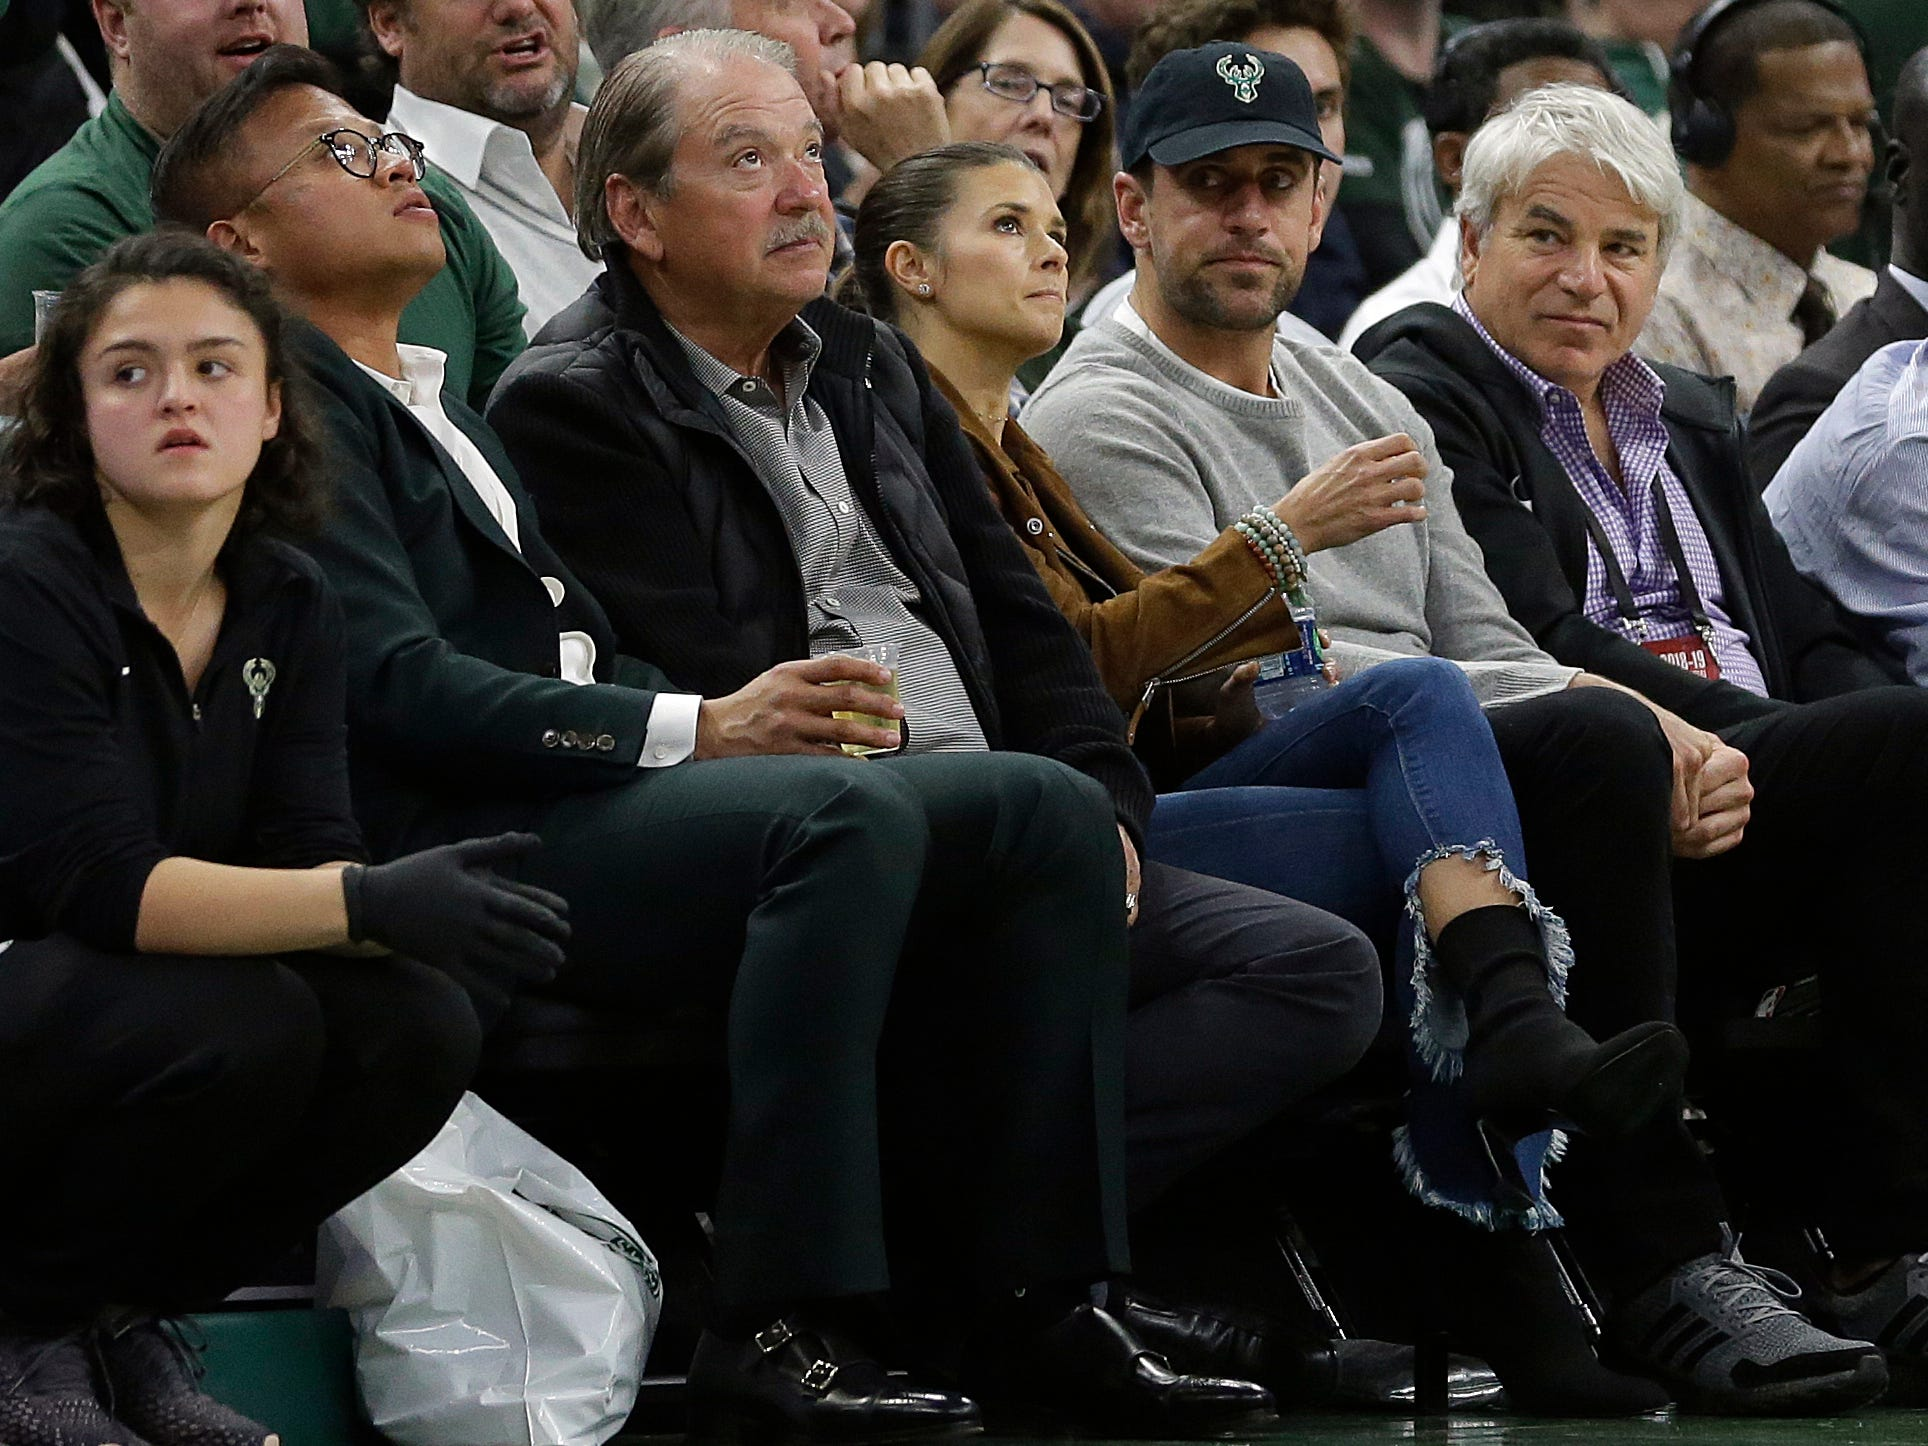 Green Bay Packers quarterback Aaron Rodgers, in black cap, and Danica Patrick watch during the first half.